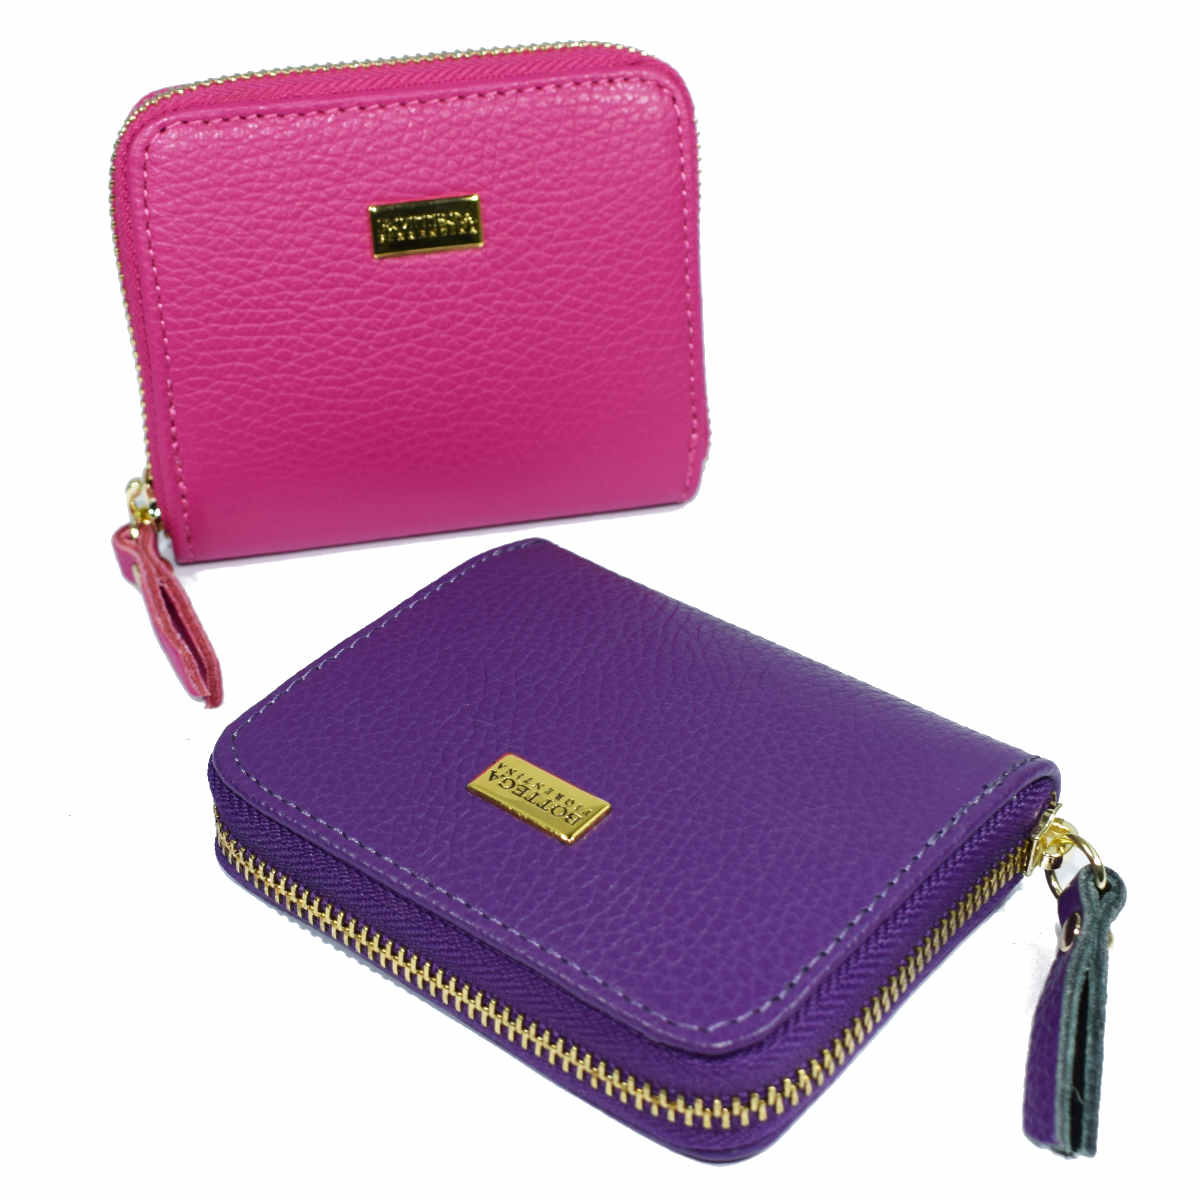 1609 ZIP TOP COMPACT ZIP WALLET by Bottega Fiorentina